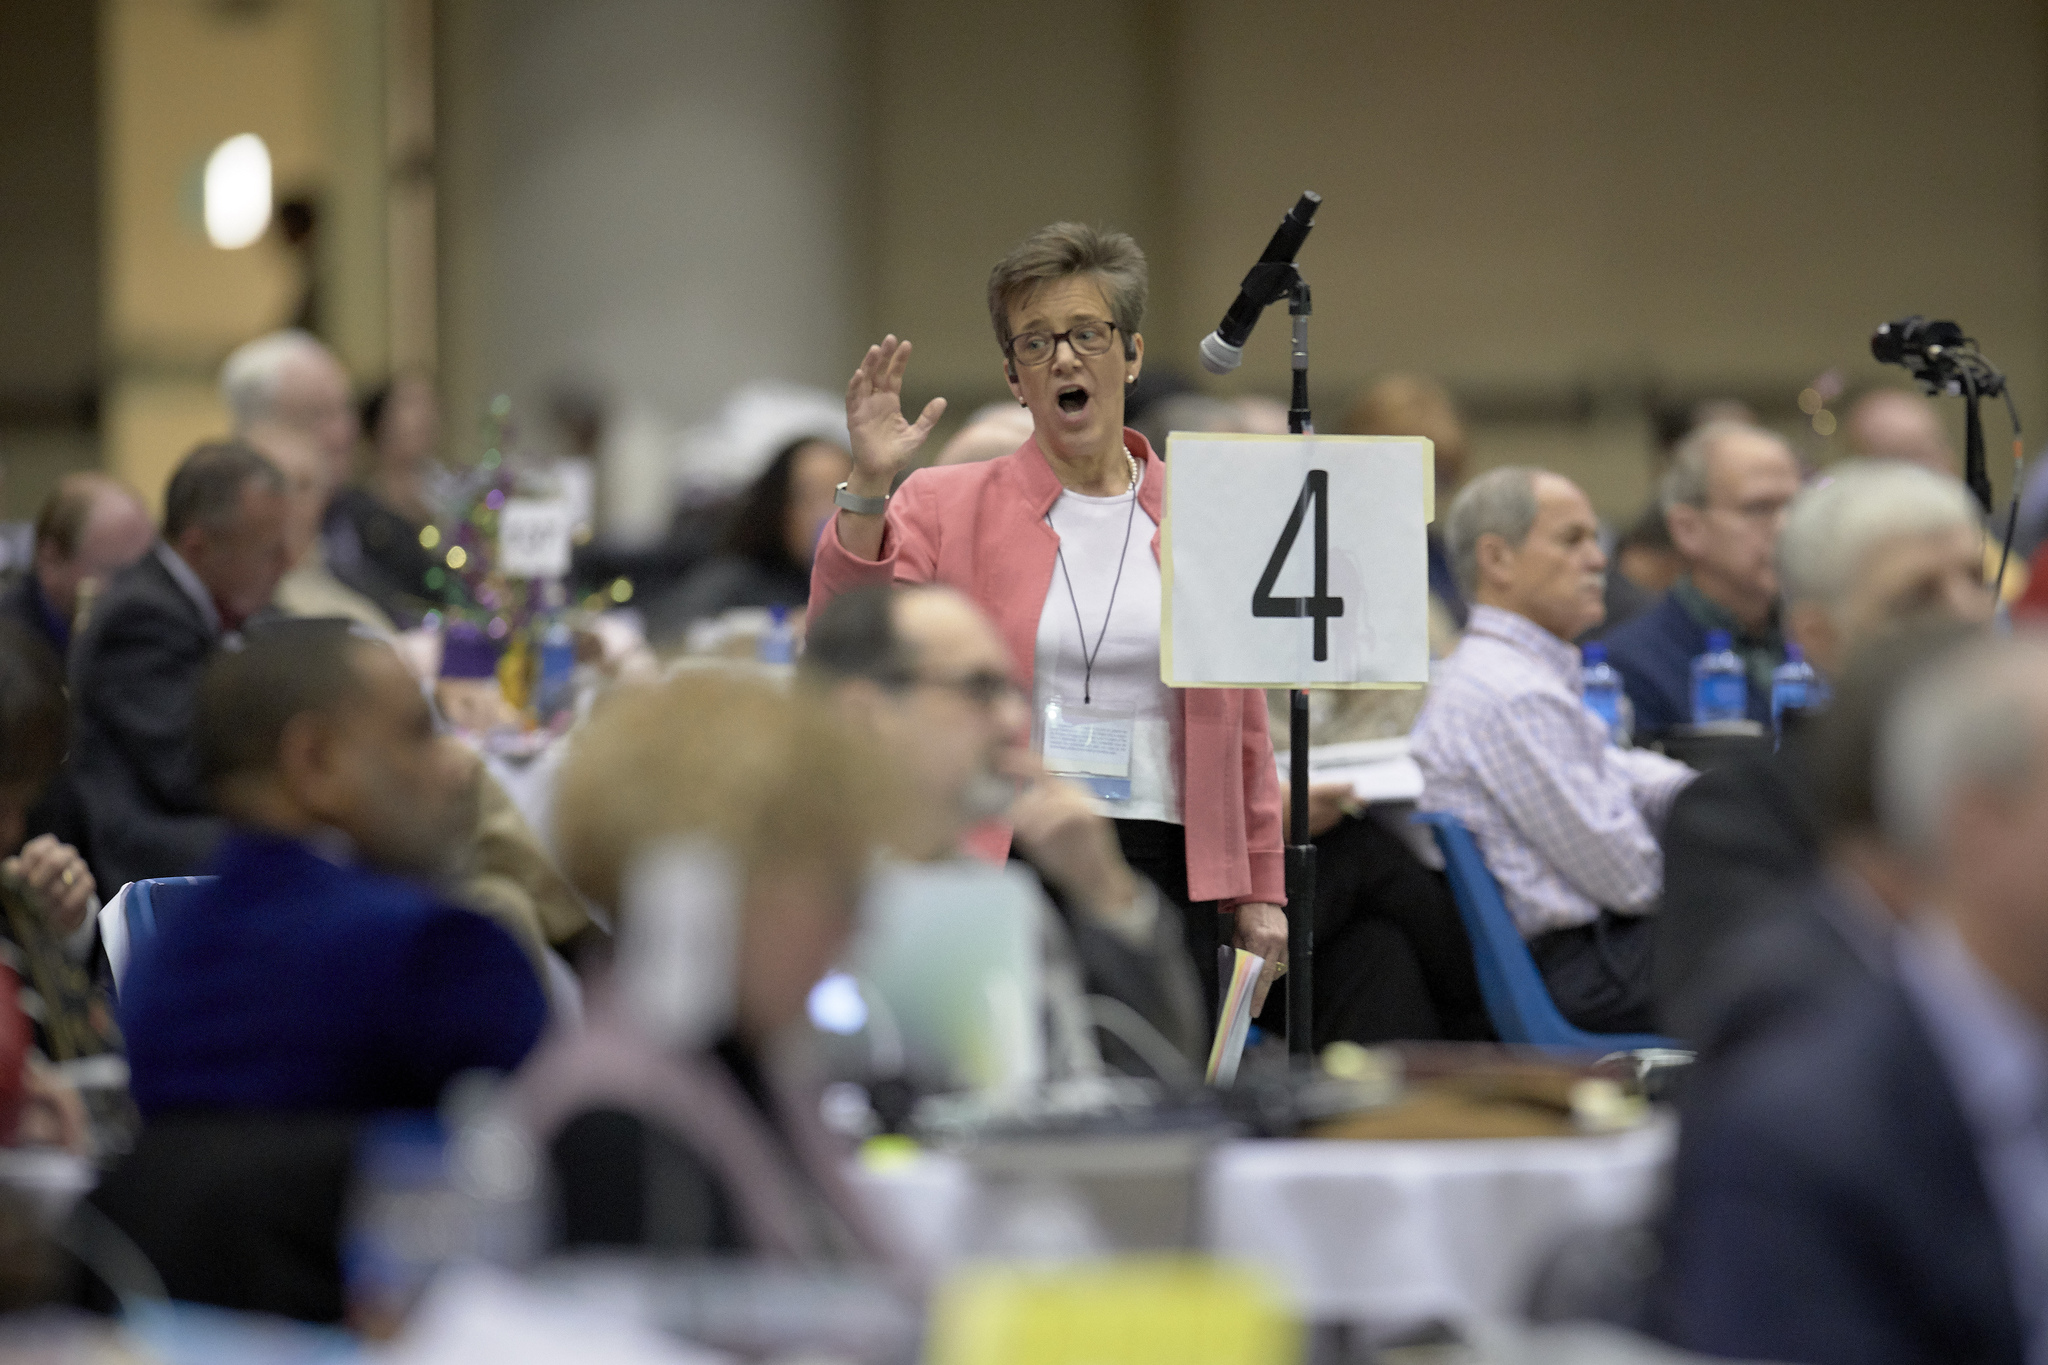 The Rev. Rebekah Miles, an Arkansas Conference delegate, speaks at the 2019 United Methodist General Conference in St. Louis. Miles spoke in favor of postponing a discussion of the Traditional Plan, which she opposes. Photo by Paul Jeffrey, UMNS.